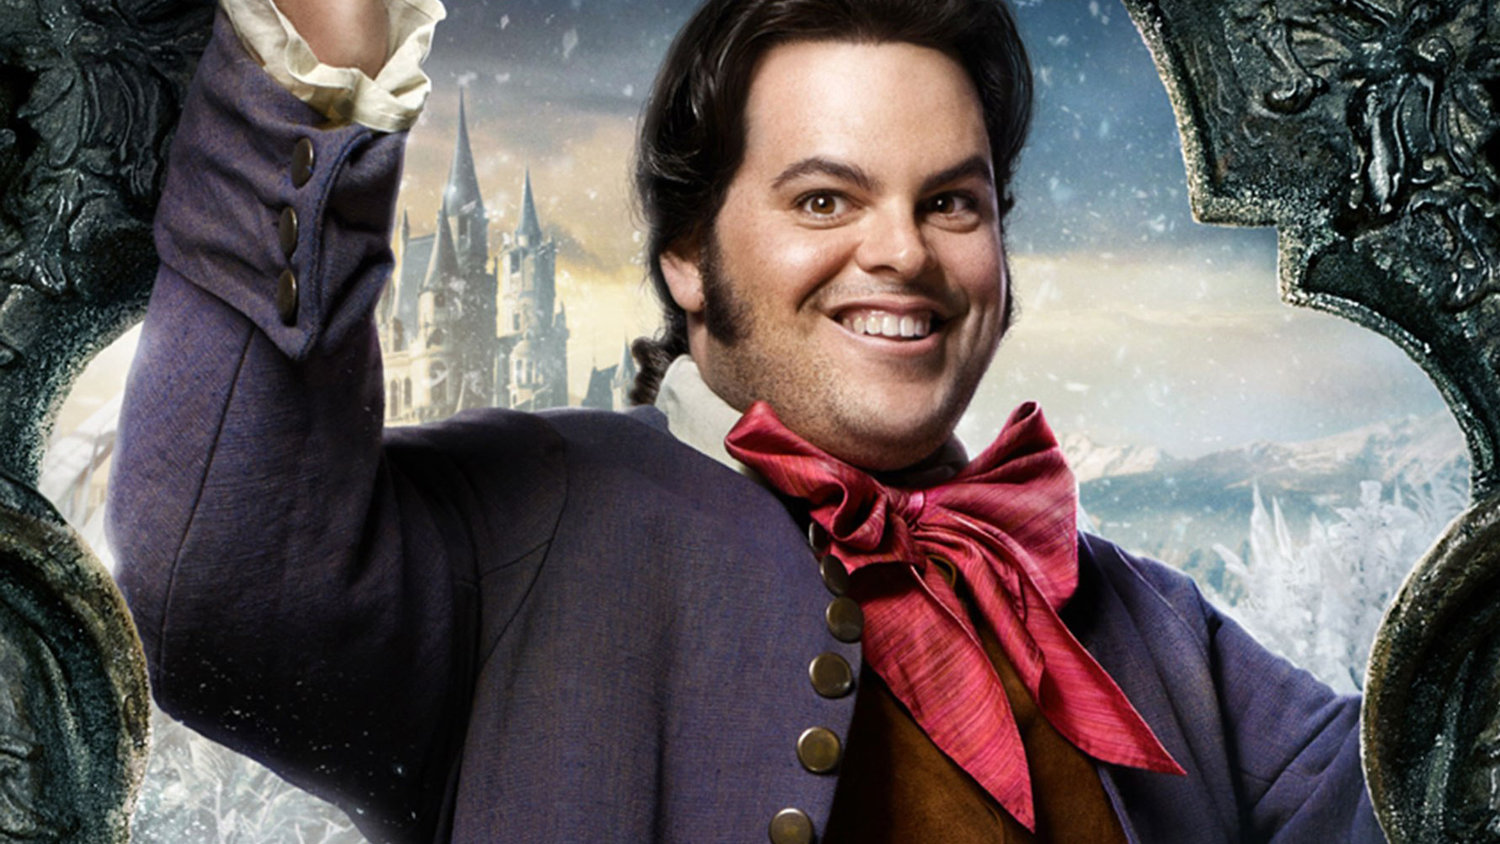 BEAUTY AND THE BEAST Contains Disney's First-Ever Gay Character: Josh Gad's LeFou